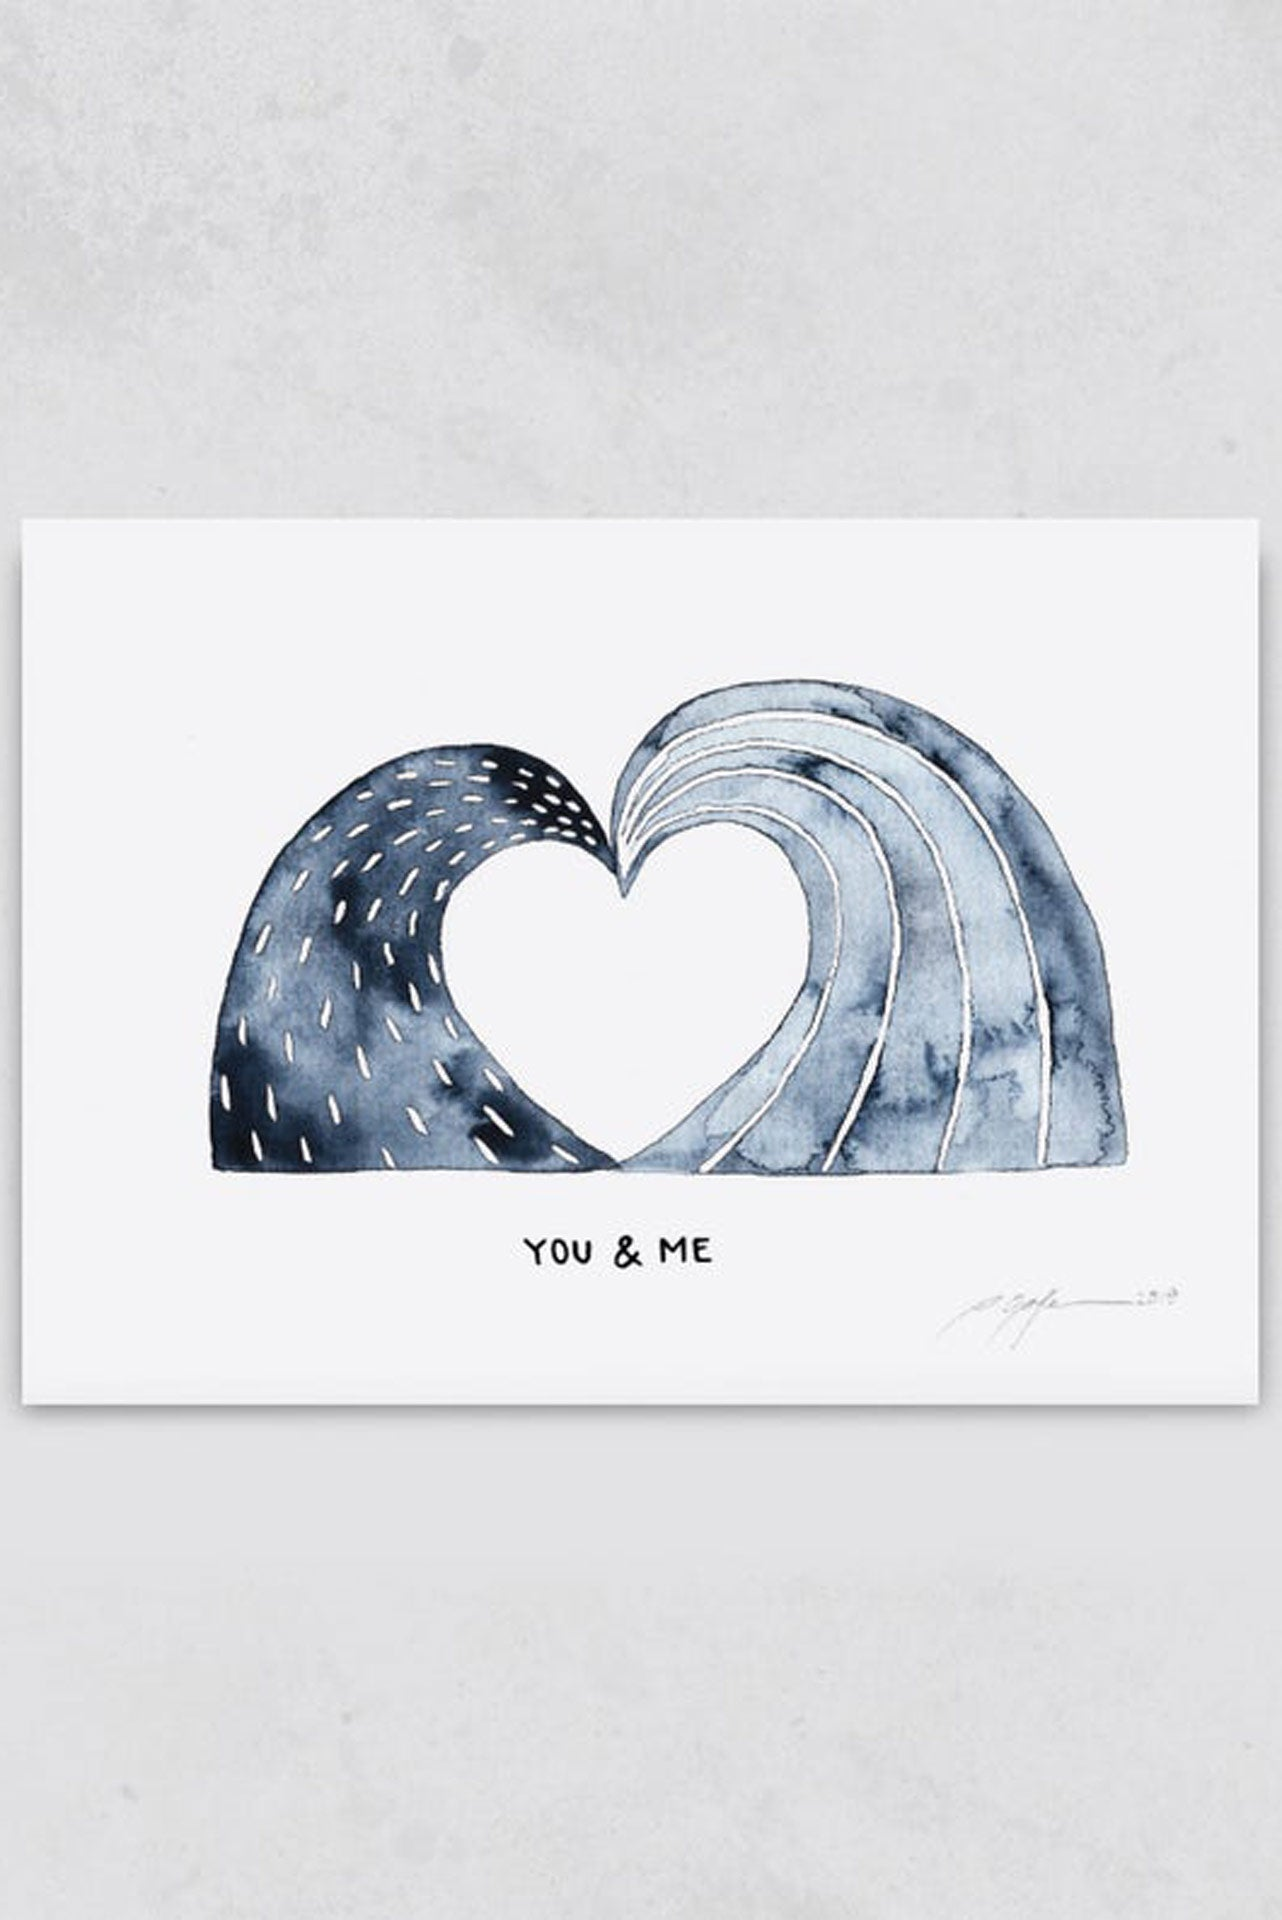 Surf Illustration You and Me Pia Himmelein